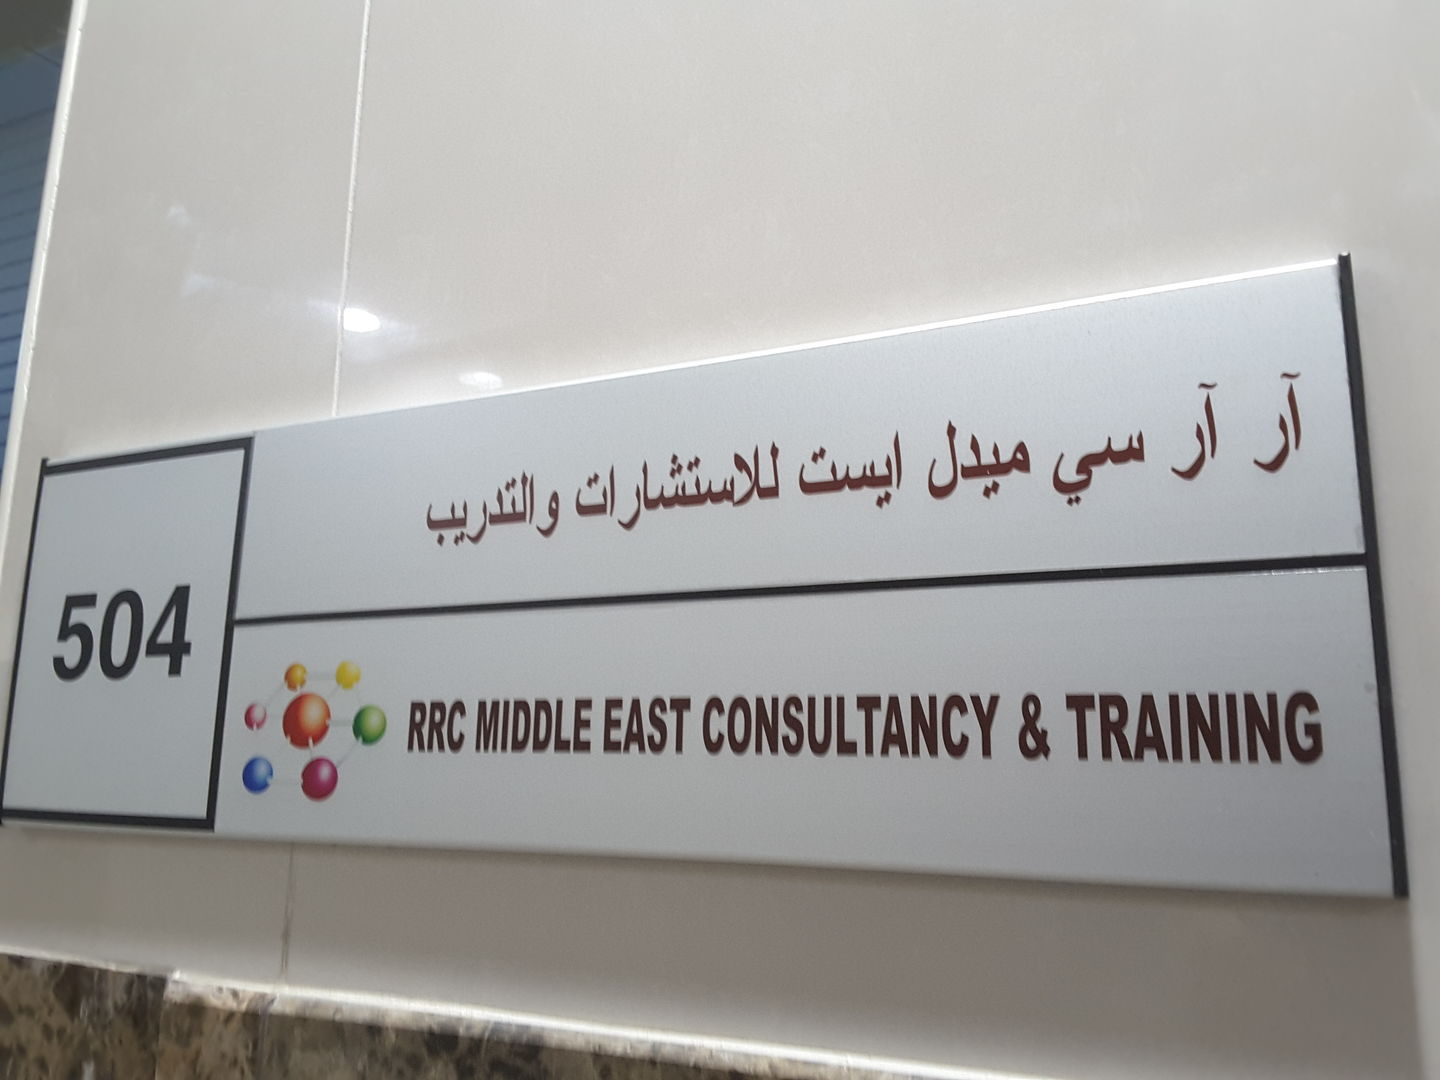 HiDubai-business-rrc-middle-east-consultancy-training-b2b-services-business-consultation-services-oud-metha-dubai-2